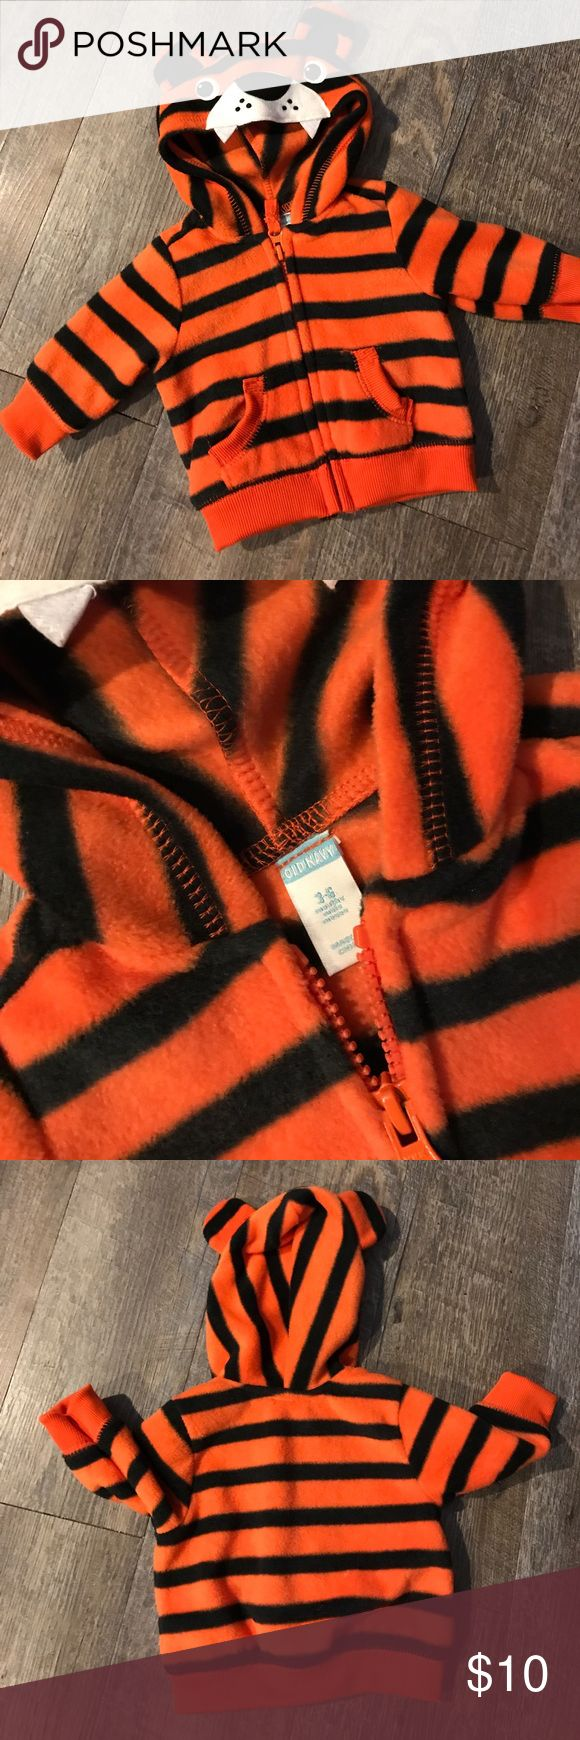 ⚡️Final Price⚡️Old navy tiger hoodie 3-6m New without tags! Never worn. Old Navy Jackets & Coats